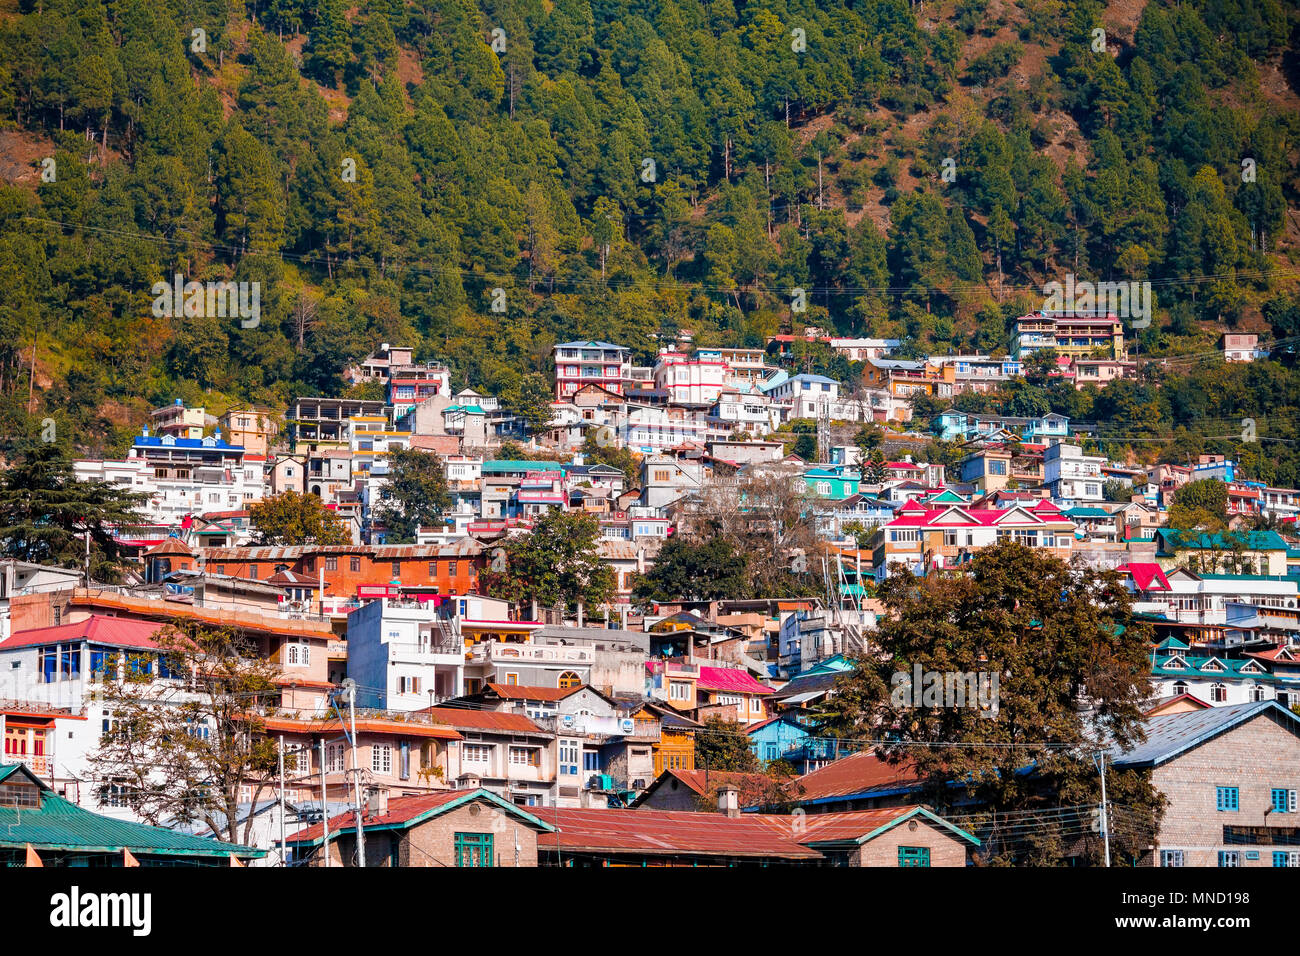 Raavi river flowing through the calm town of Chamba, Himachal Pradesh. - Stock Image